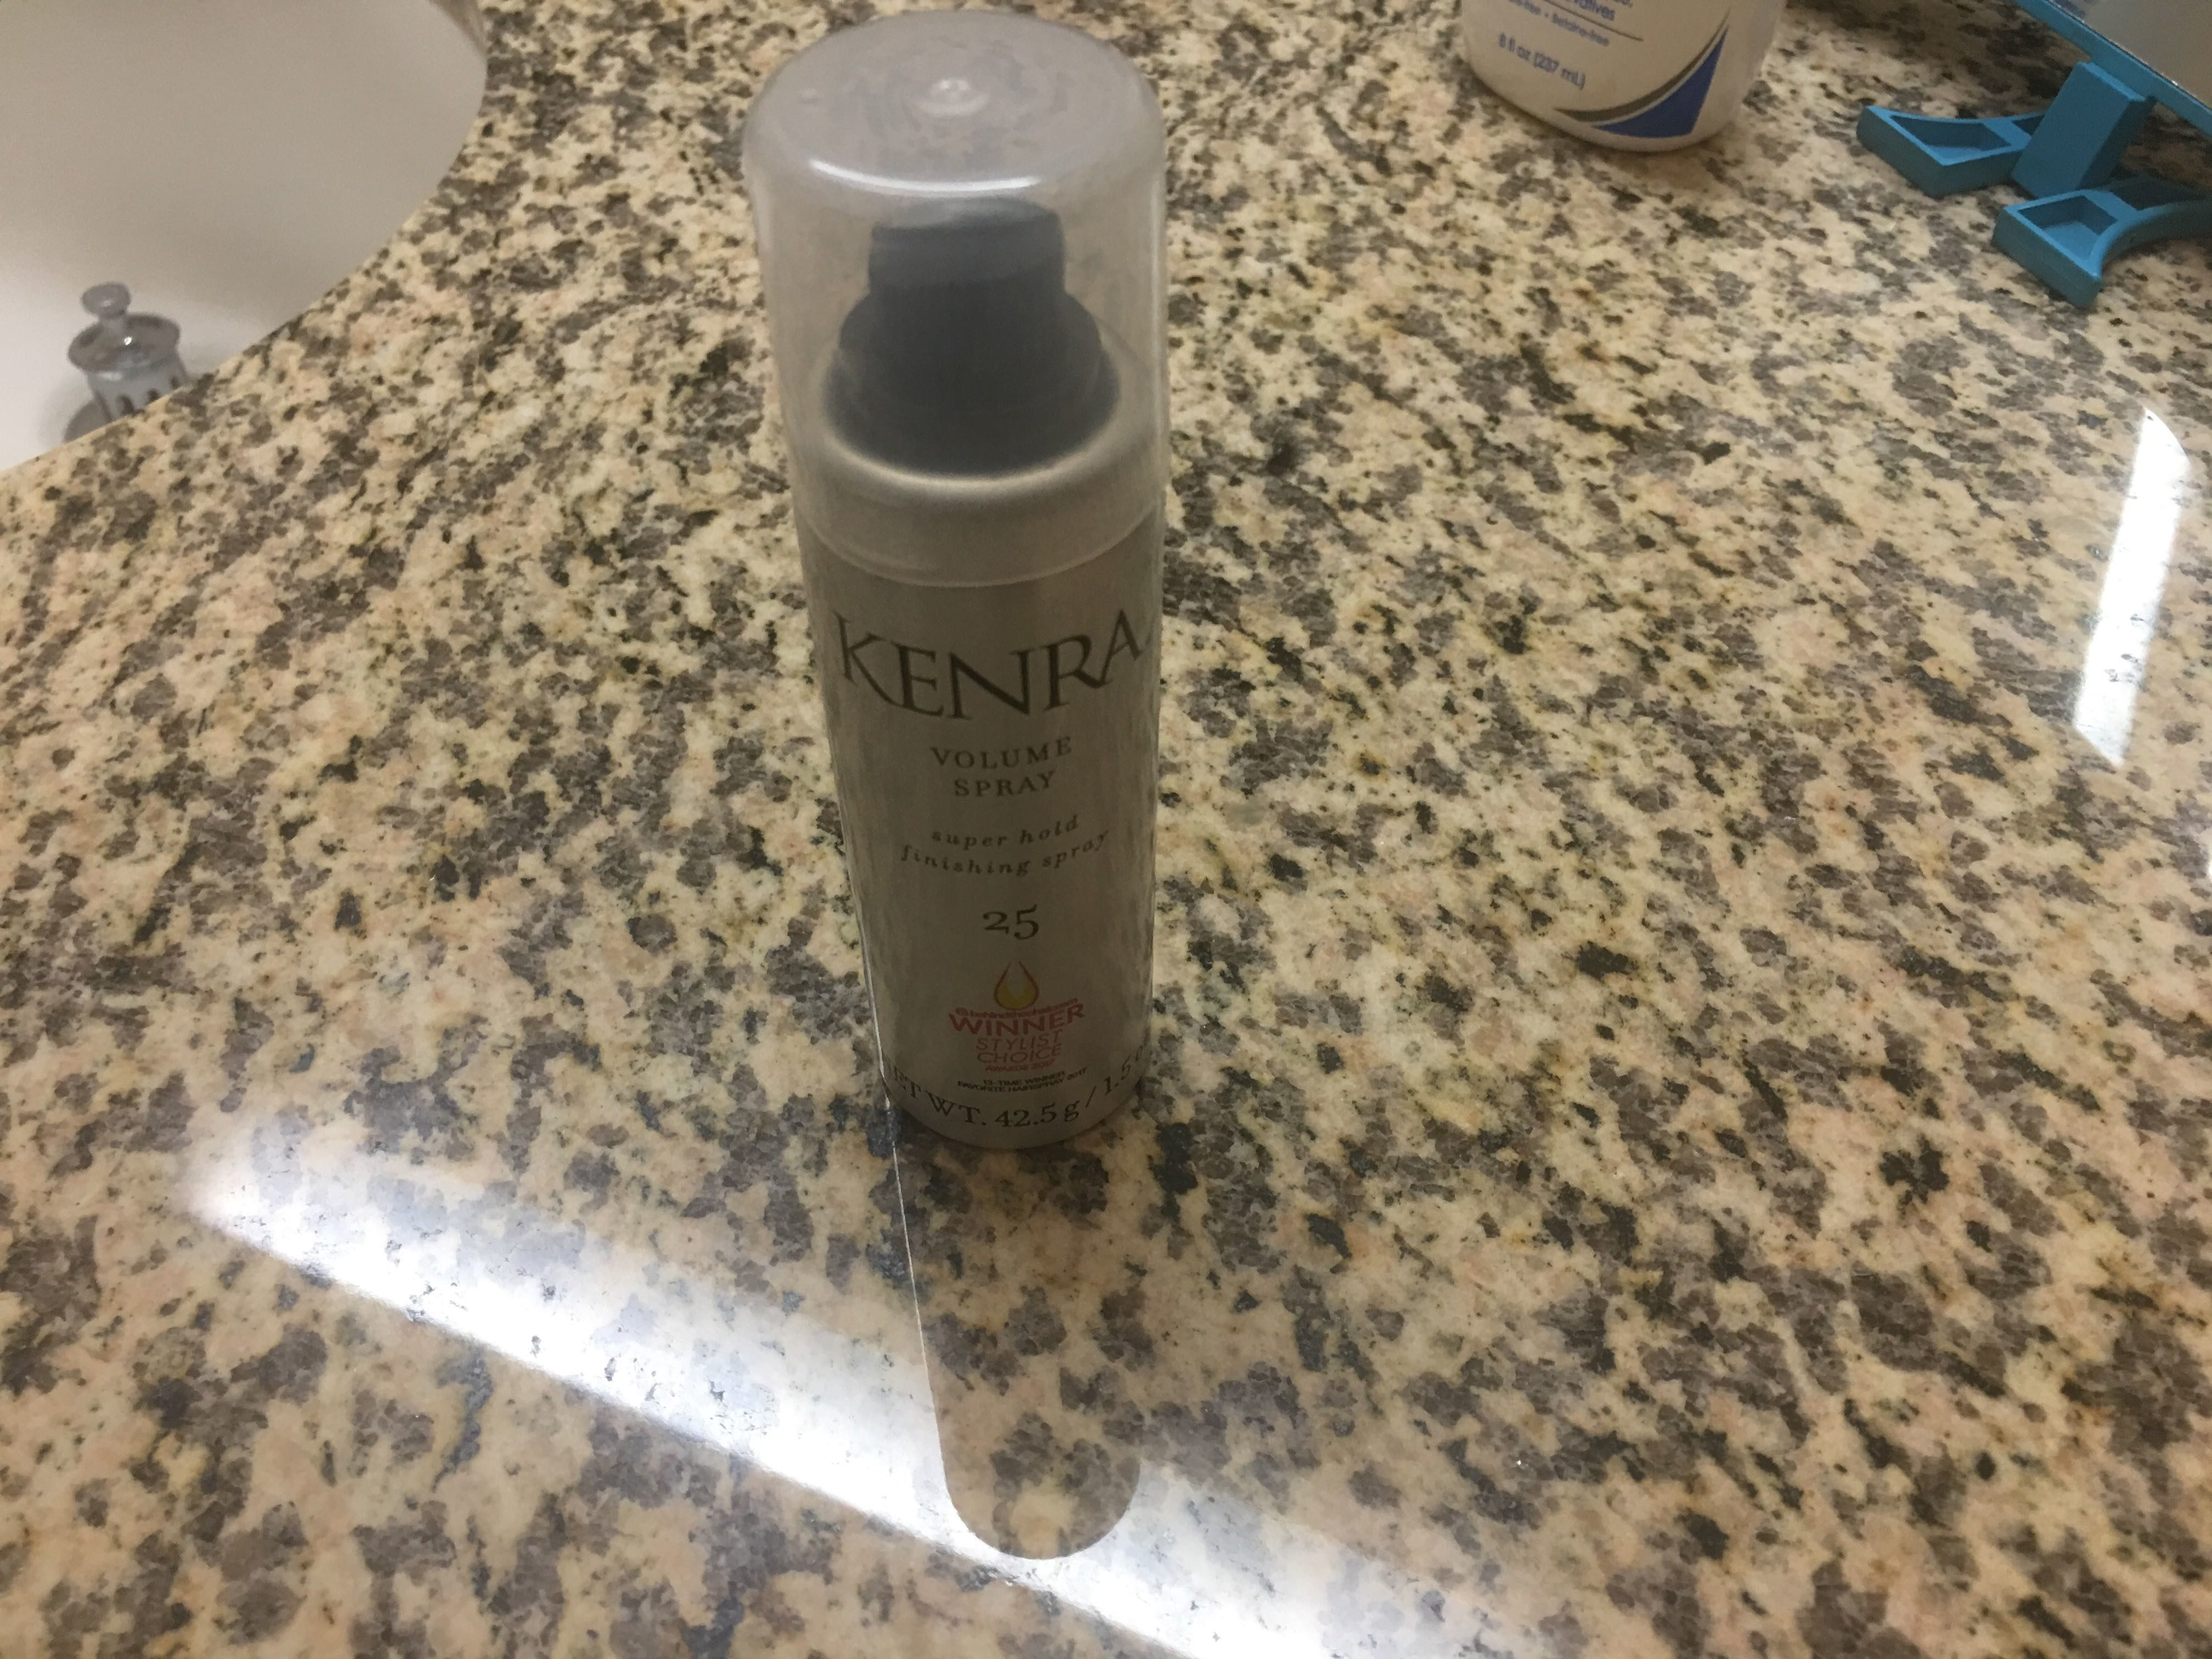 Kenra volume spray - Produit - en